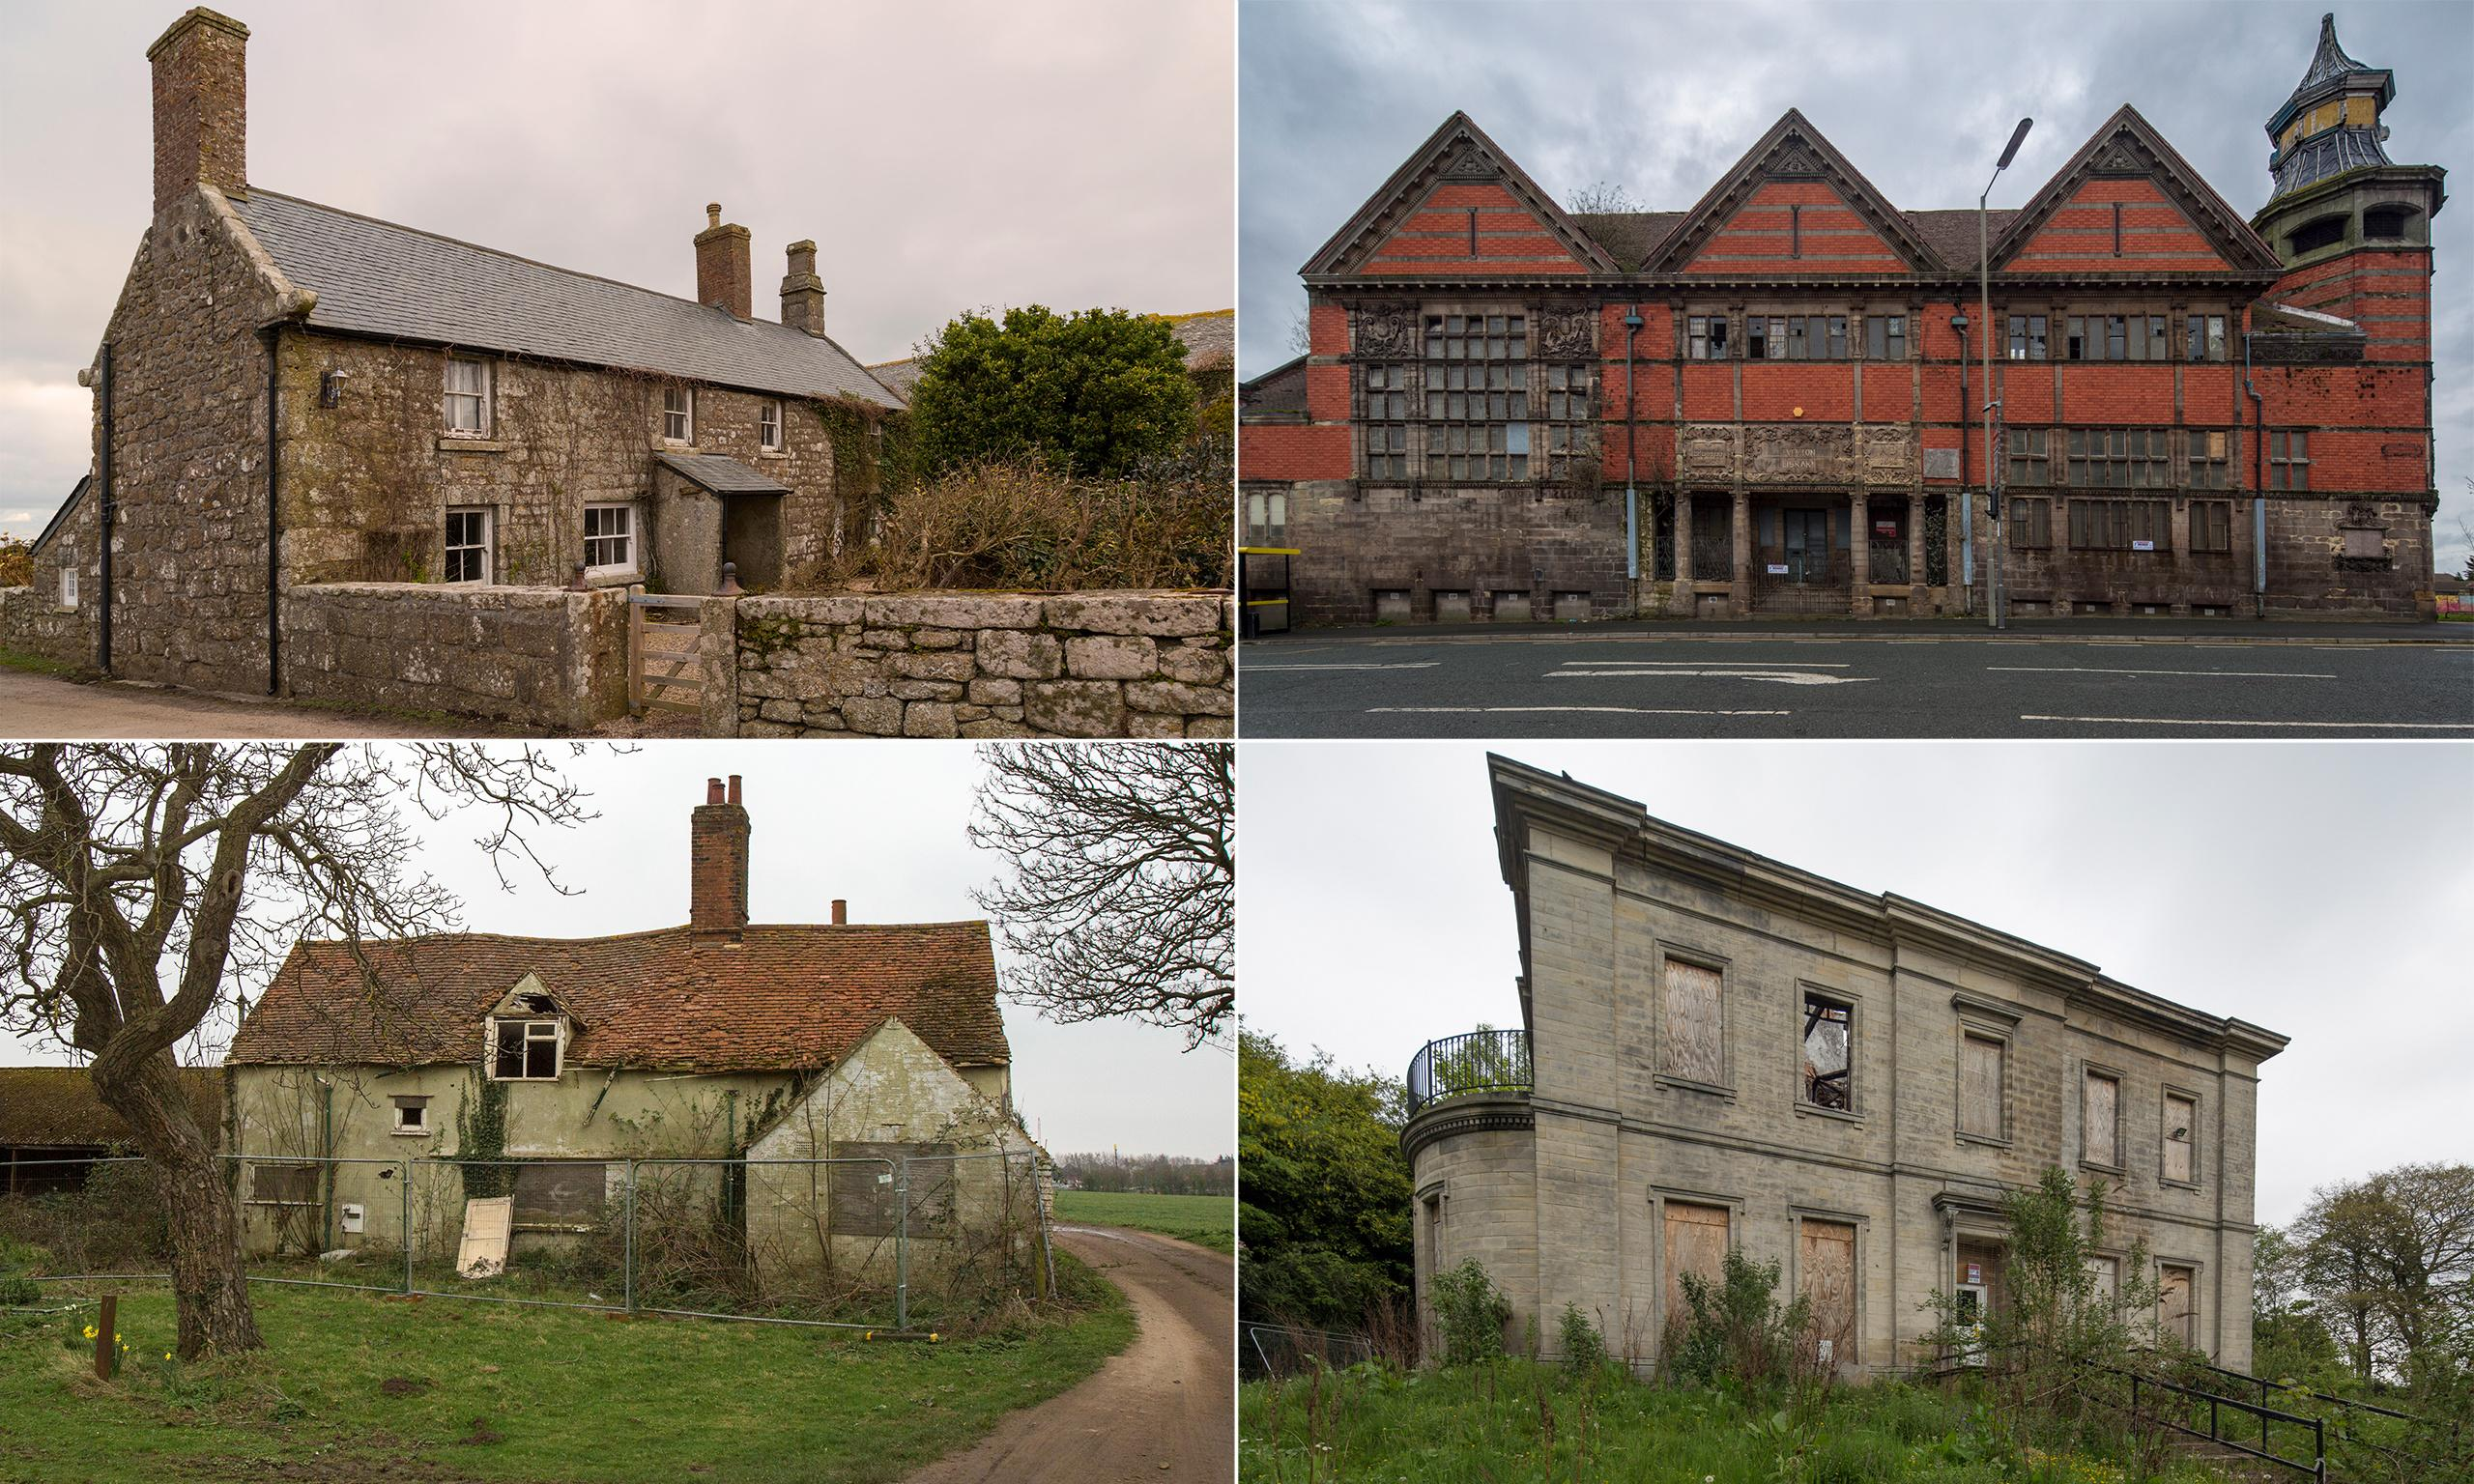 The art deco pub, the library and Poldark manor: Britain's architectural gems at risk